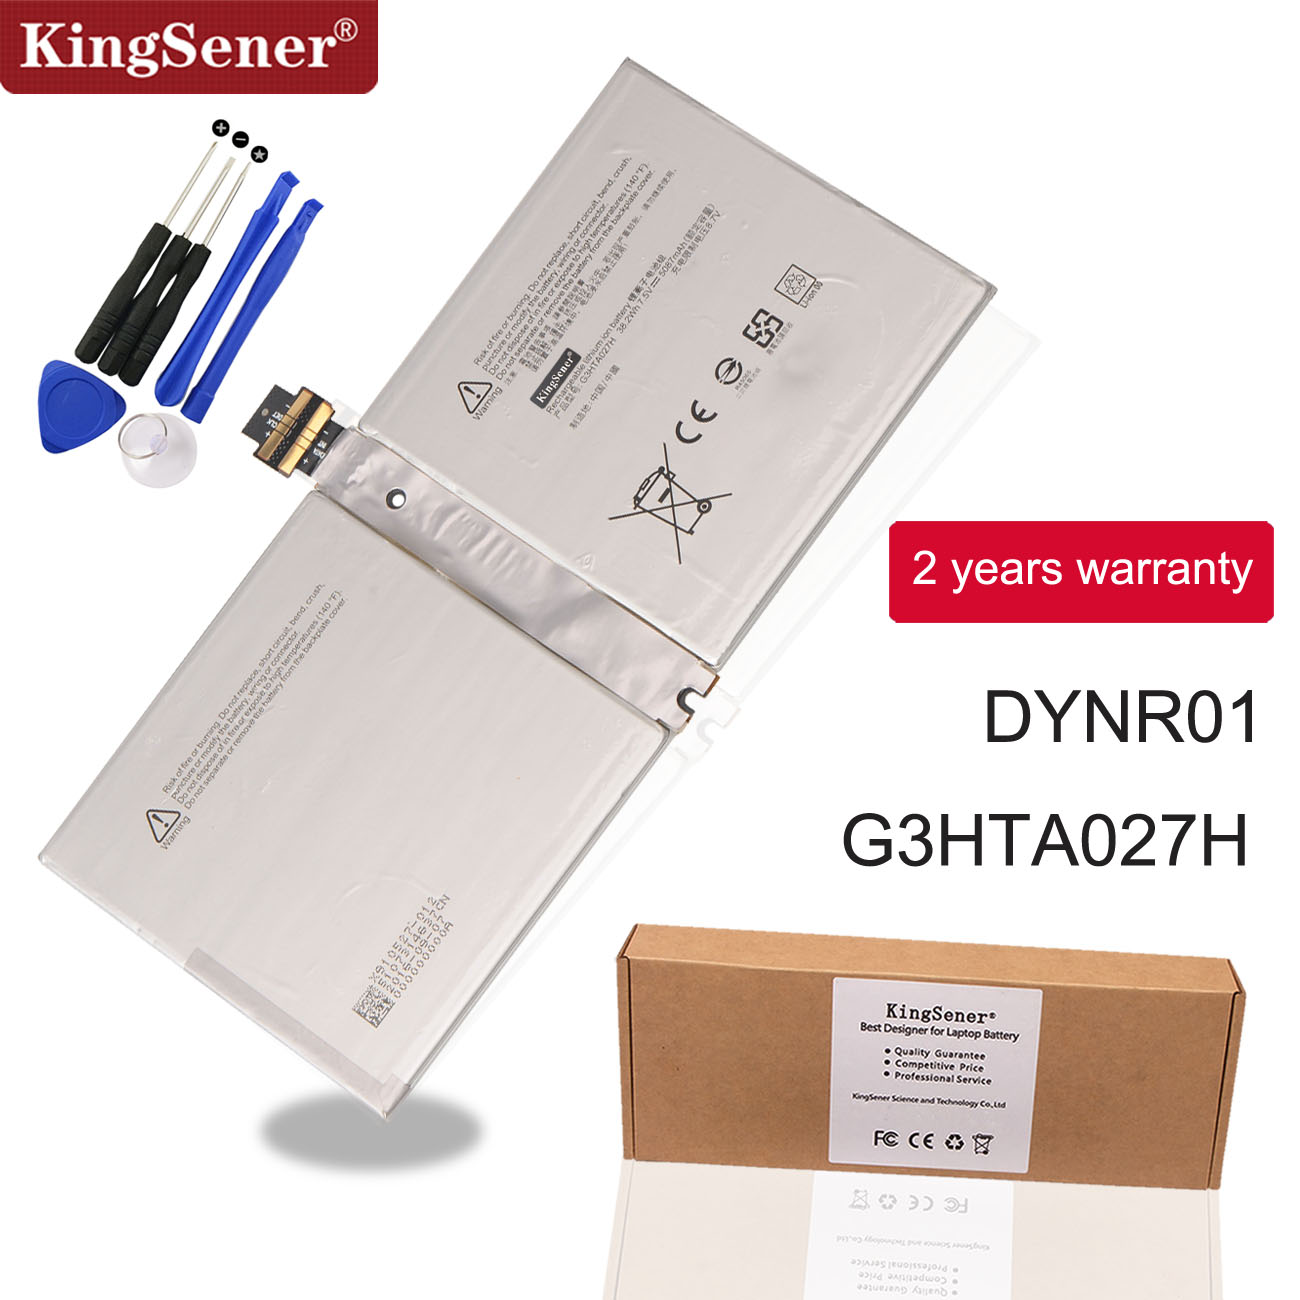 "KingSener G3HTA027H DYNR01 Laptop Battery For Microsoft Surface Pro 4 1724 12.3"" Tablet 7.5V 38.2WH/5087mAh"